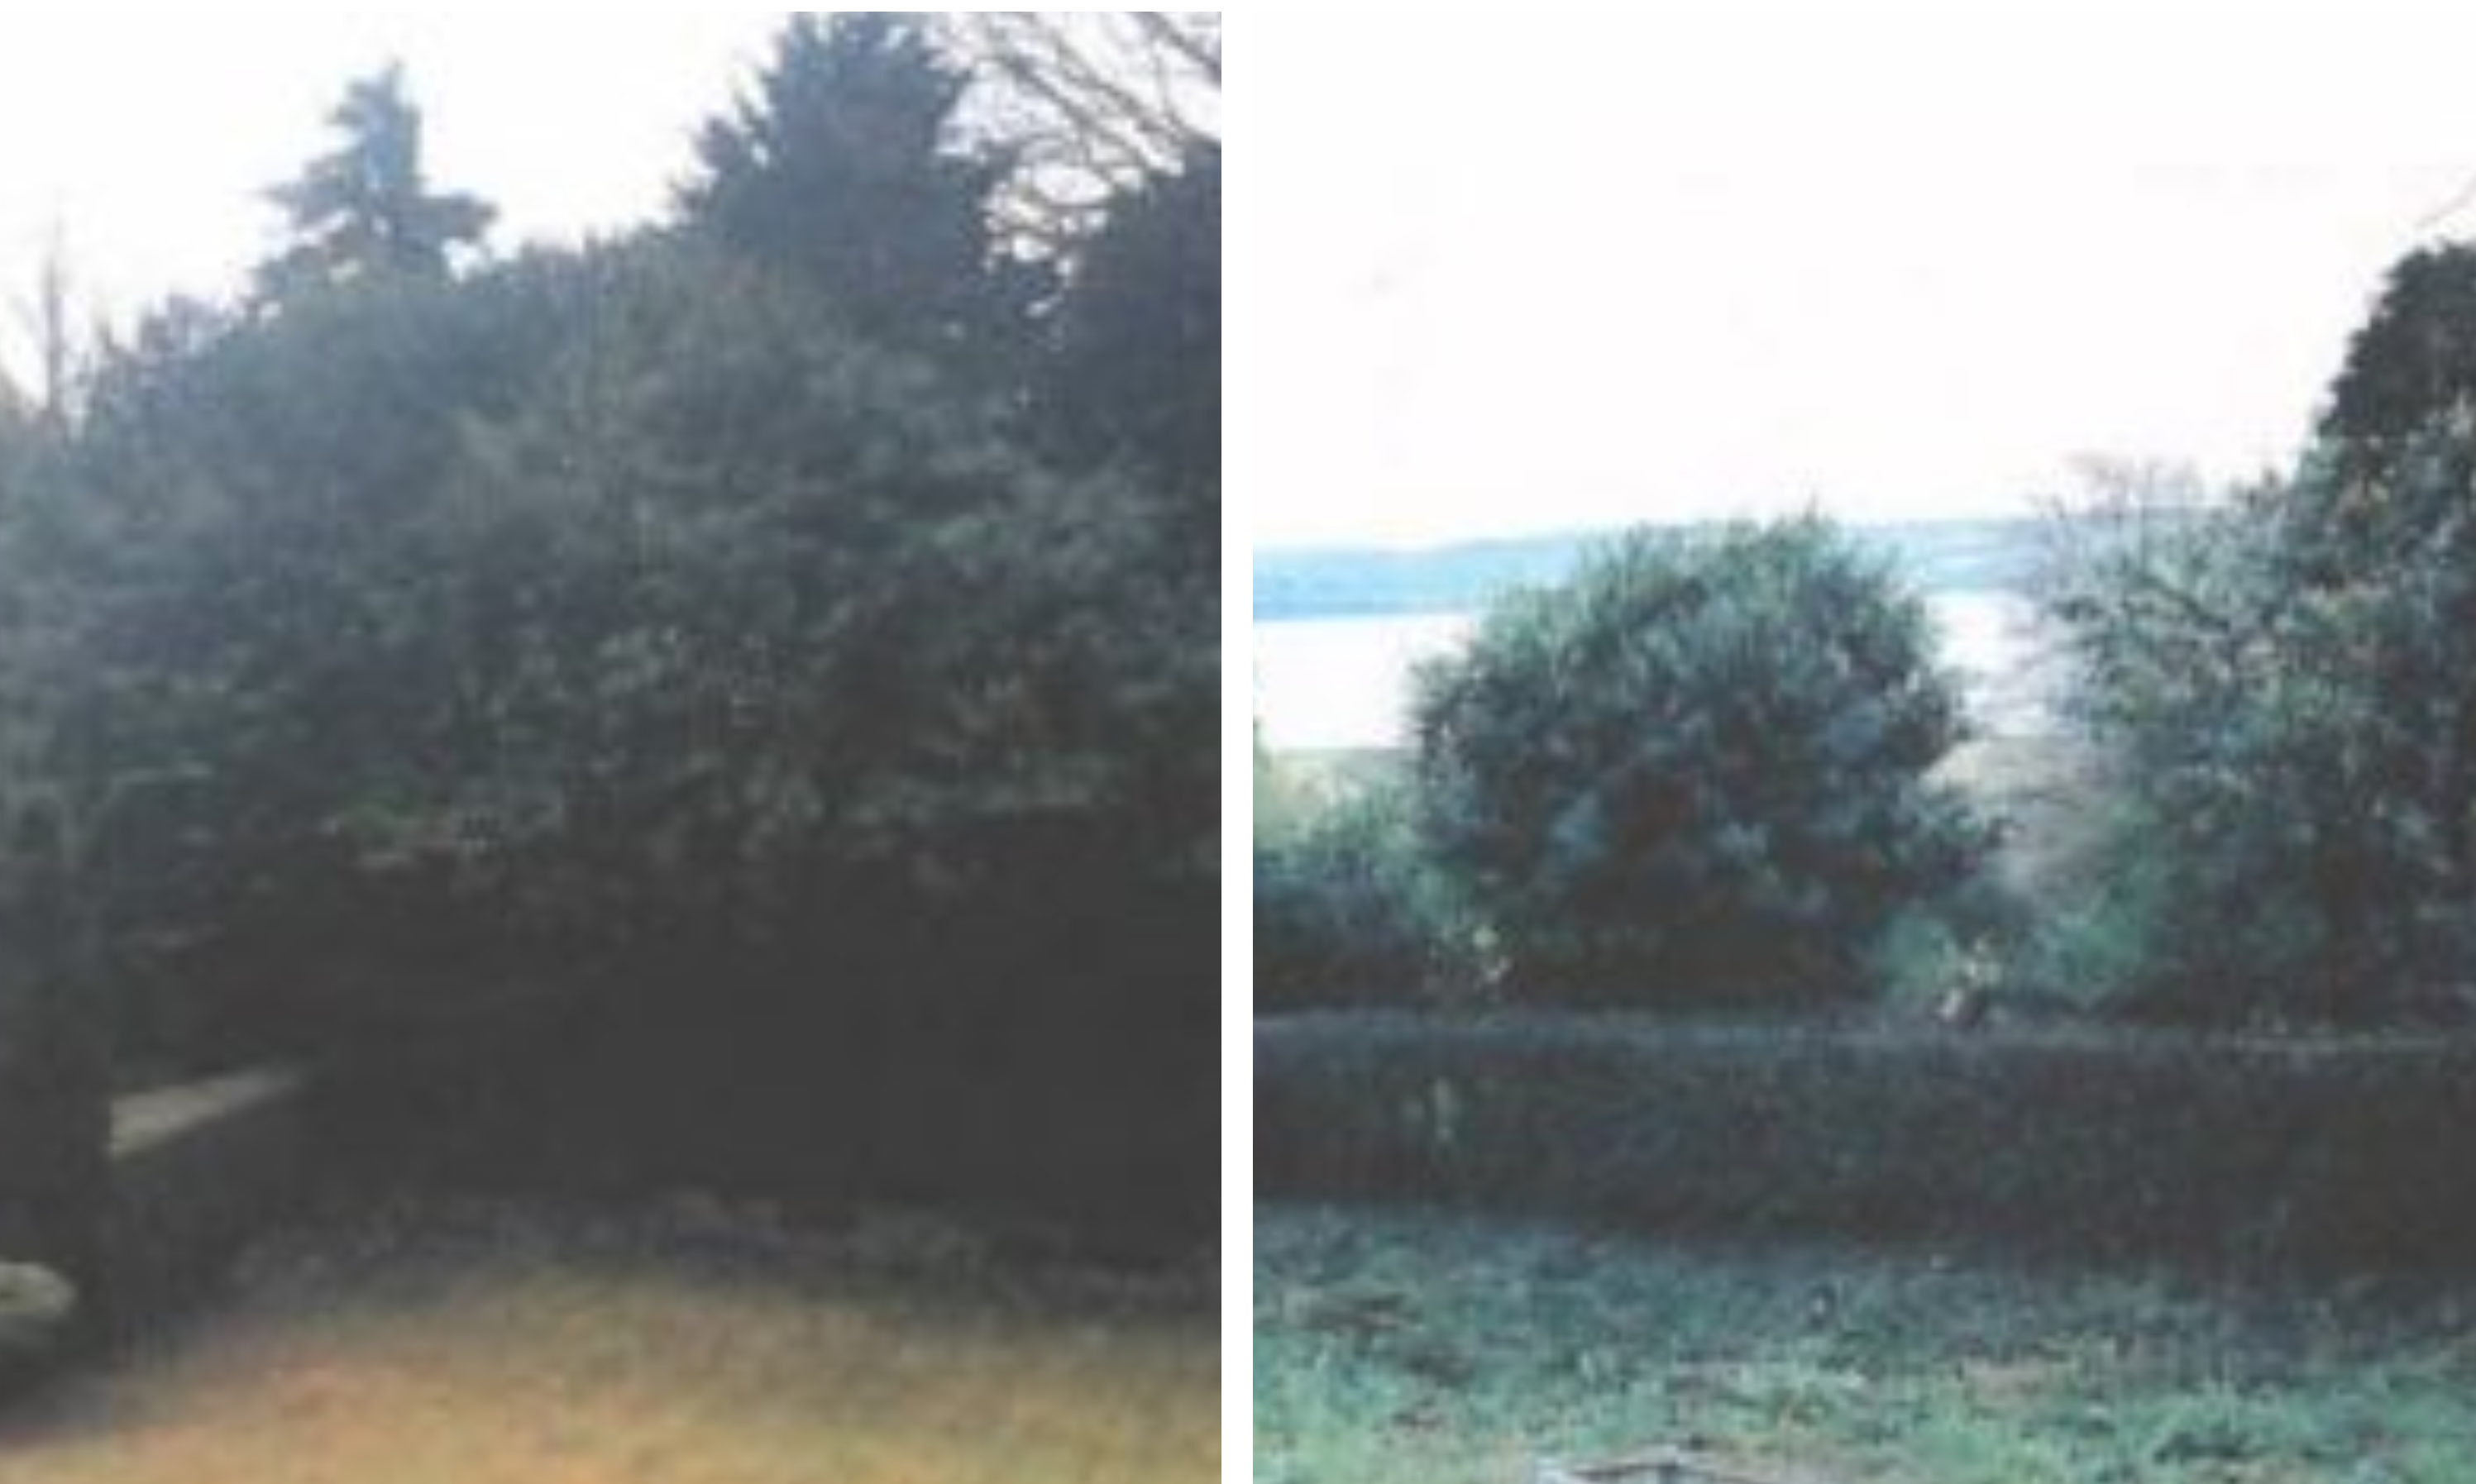 The trees in question, before and after.